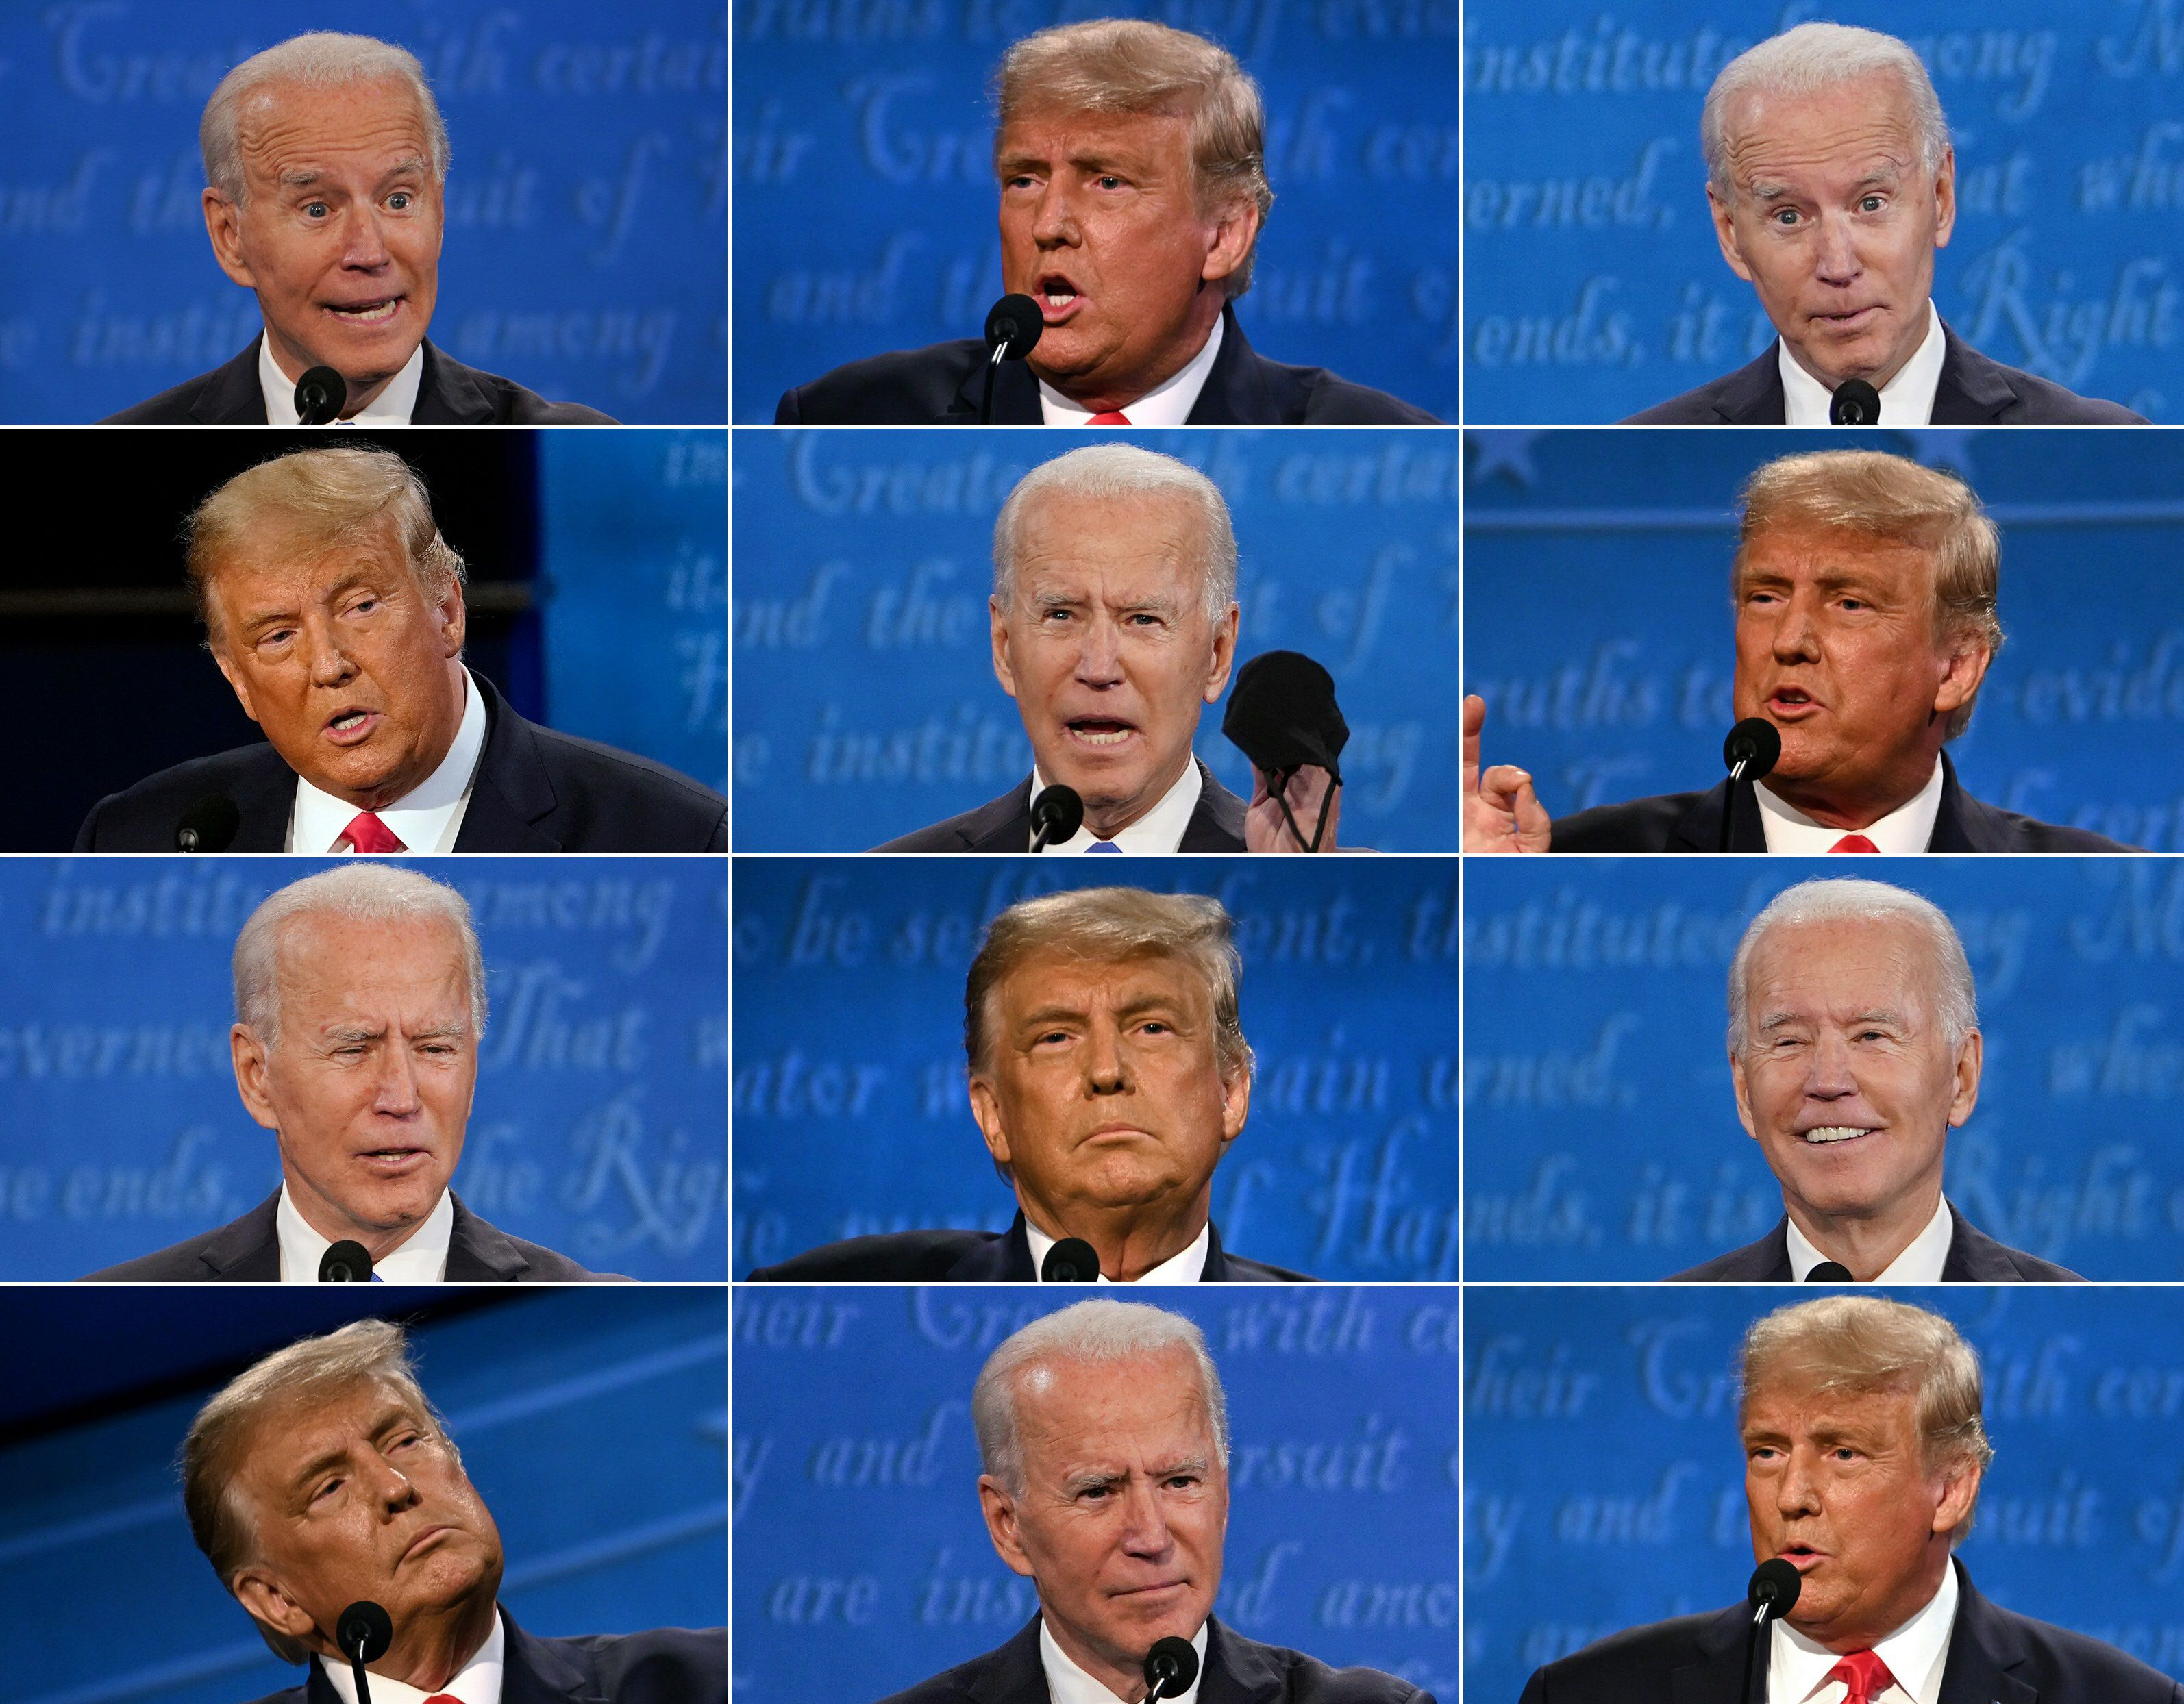 This combination of pictures created on October 22, 2020 shows US President Donald Trump and Democratic Presidential candidate and former US Vice President Joe Biden during the final presidential debate at Belmont University in Nashville, Tennessee, on October 22, 2020.